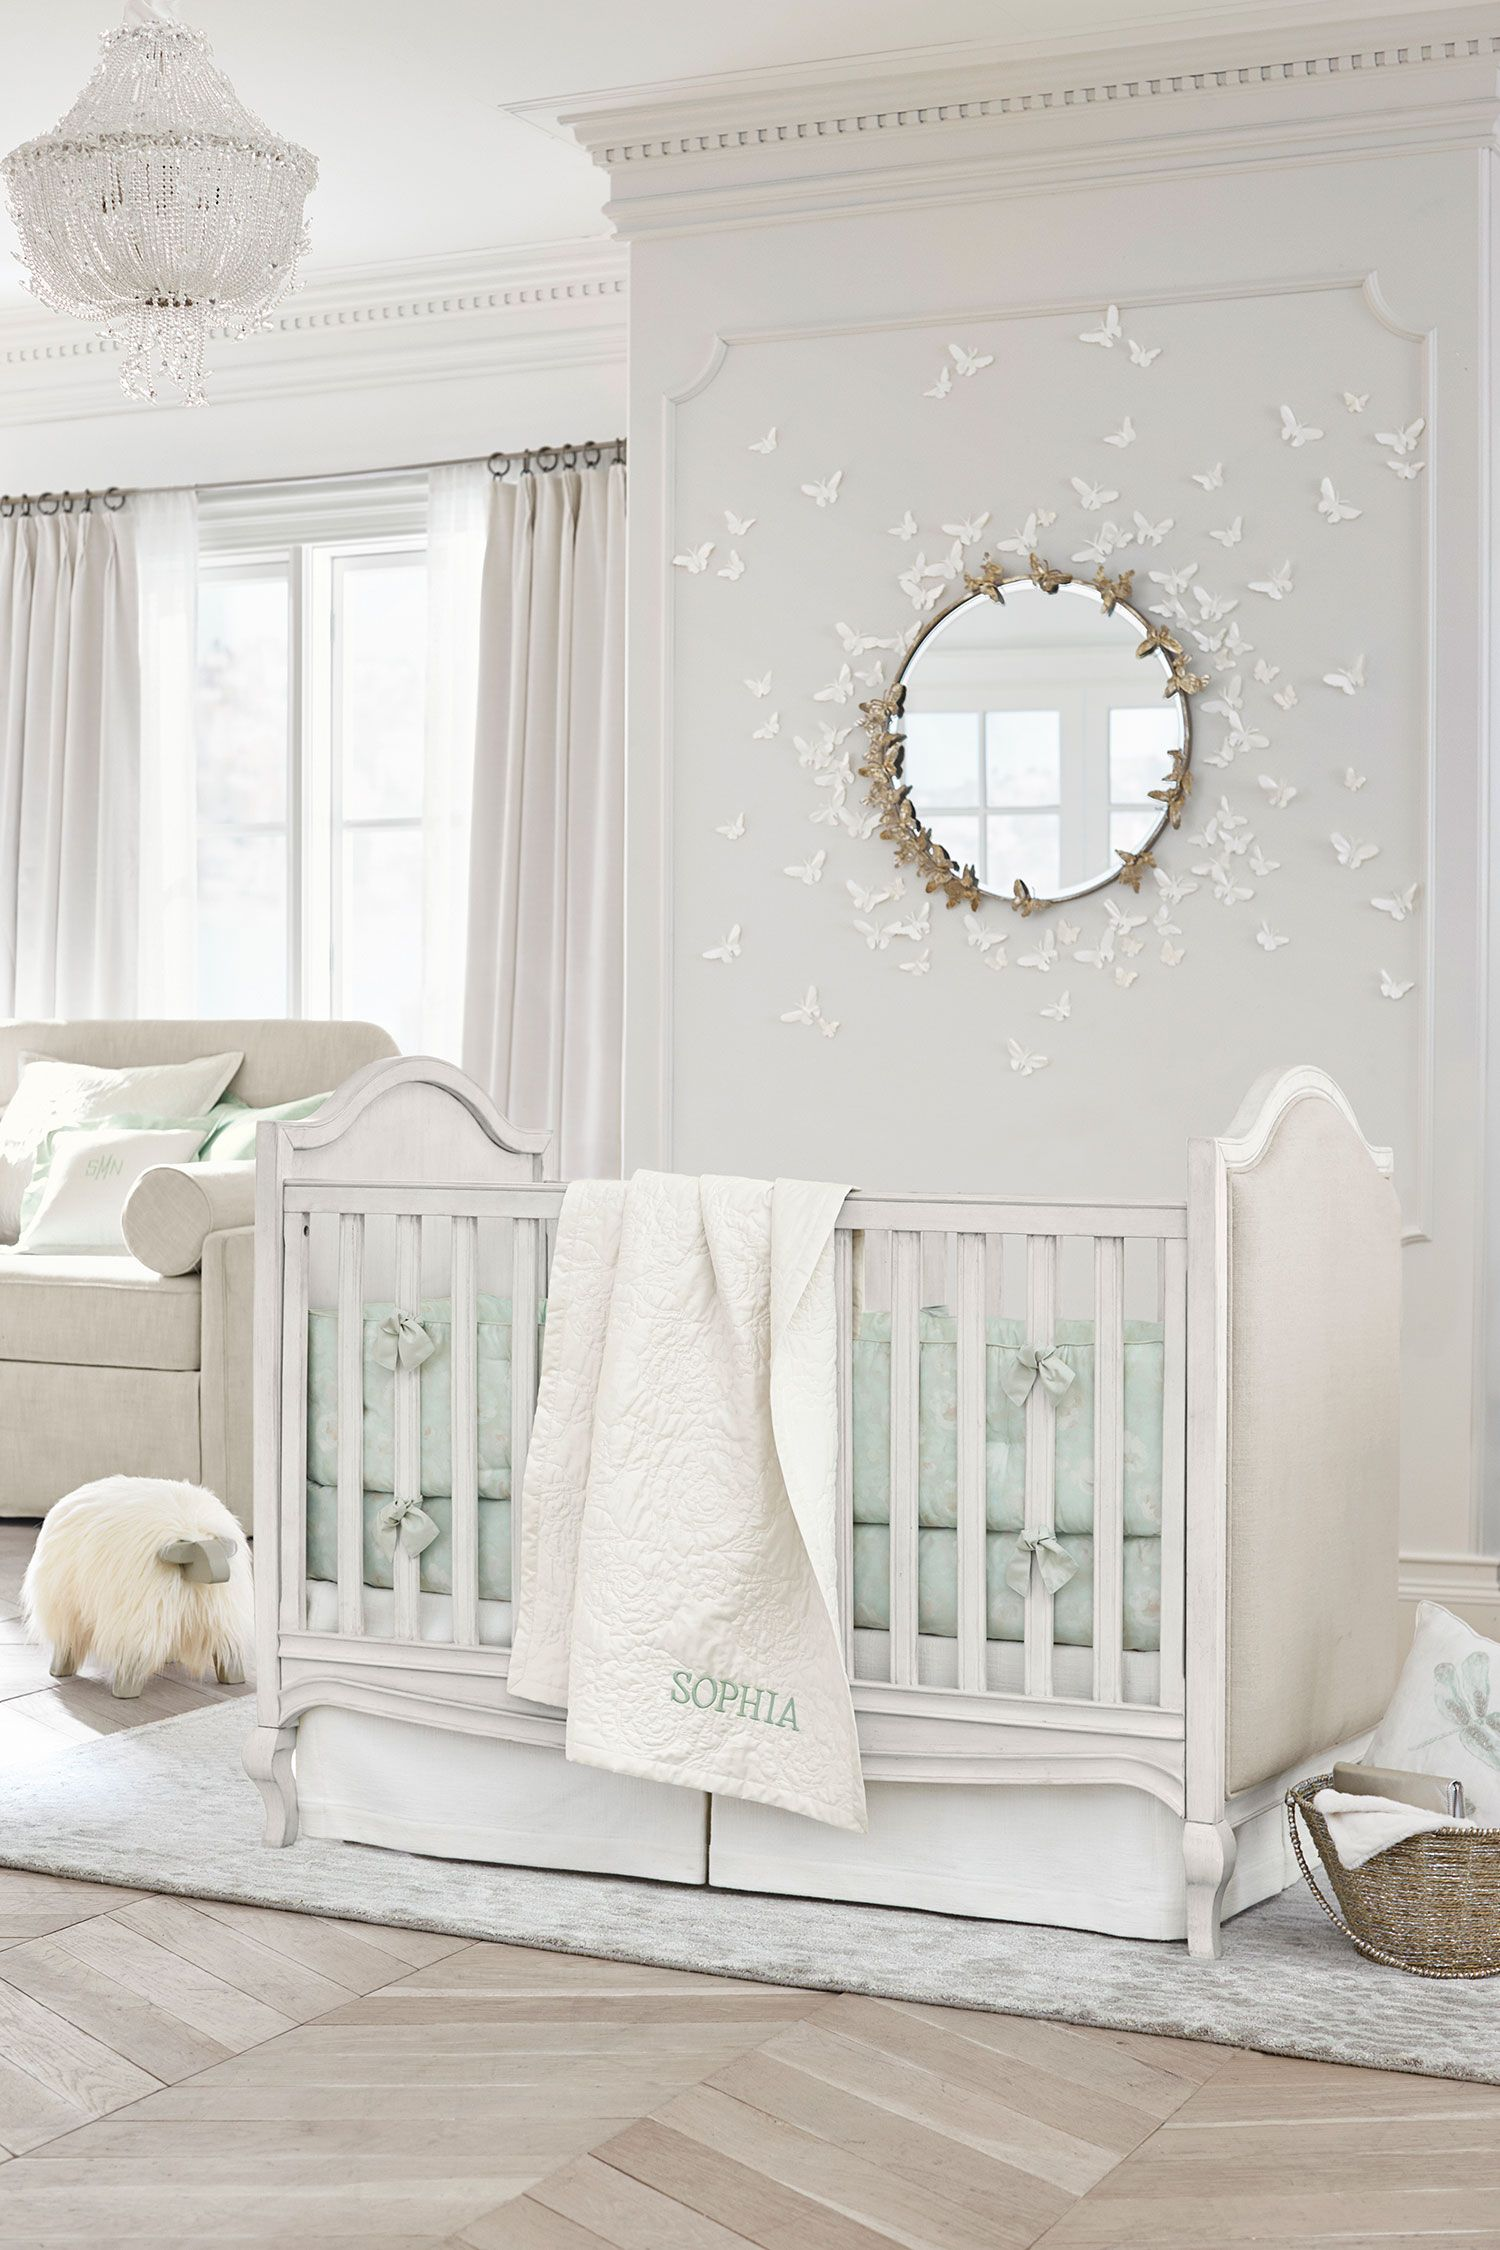 Interview Monique Lhuillier On Her Collection For Pottery Barn Kids Rue